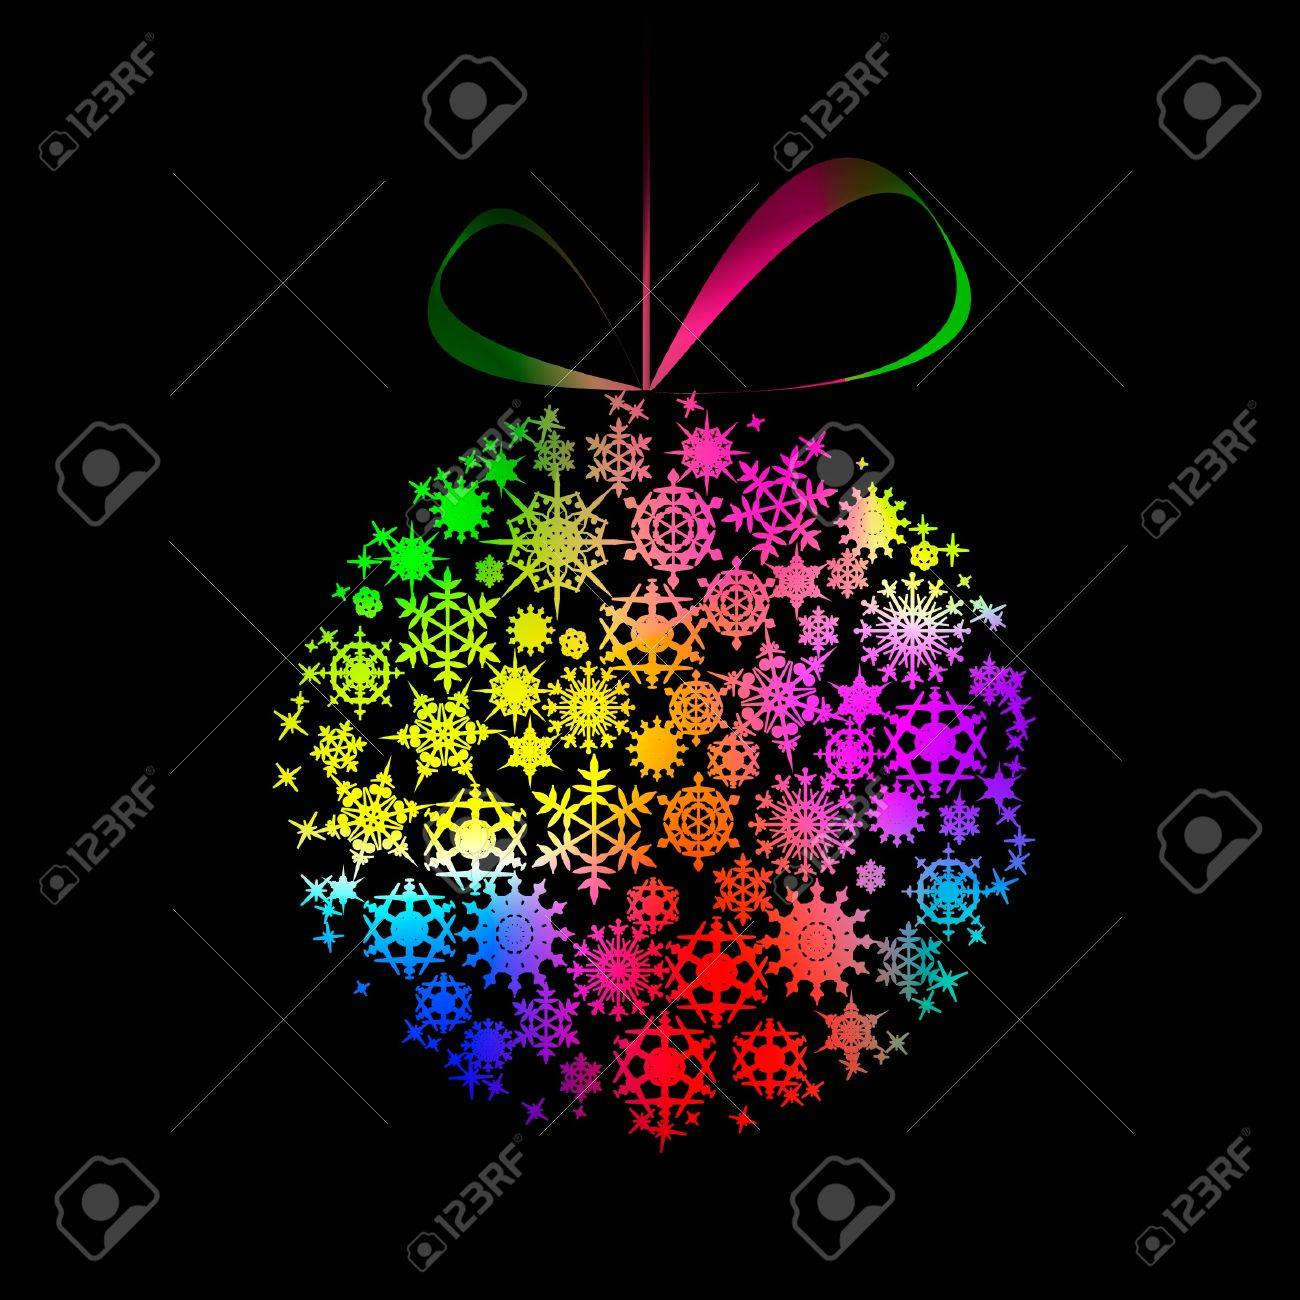 Multicolored Christmas  ball made of snowflakes and stars on black background. illustration Stock Vector - 8687332